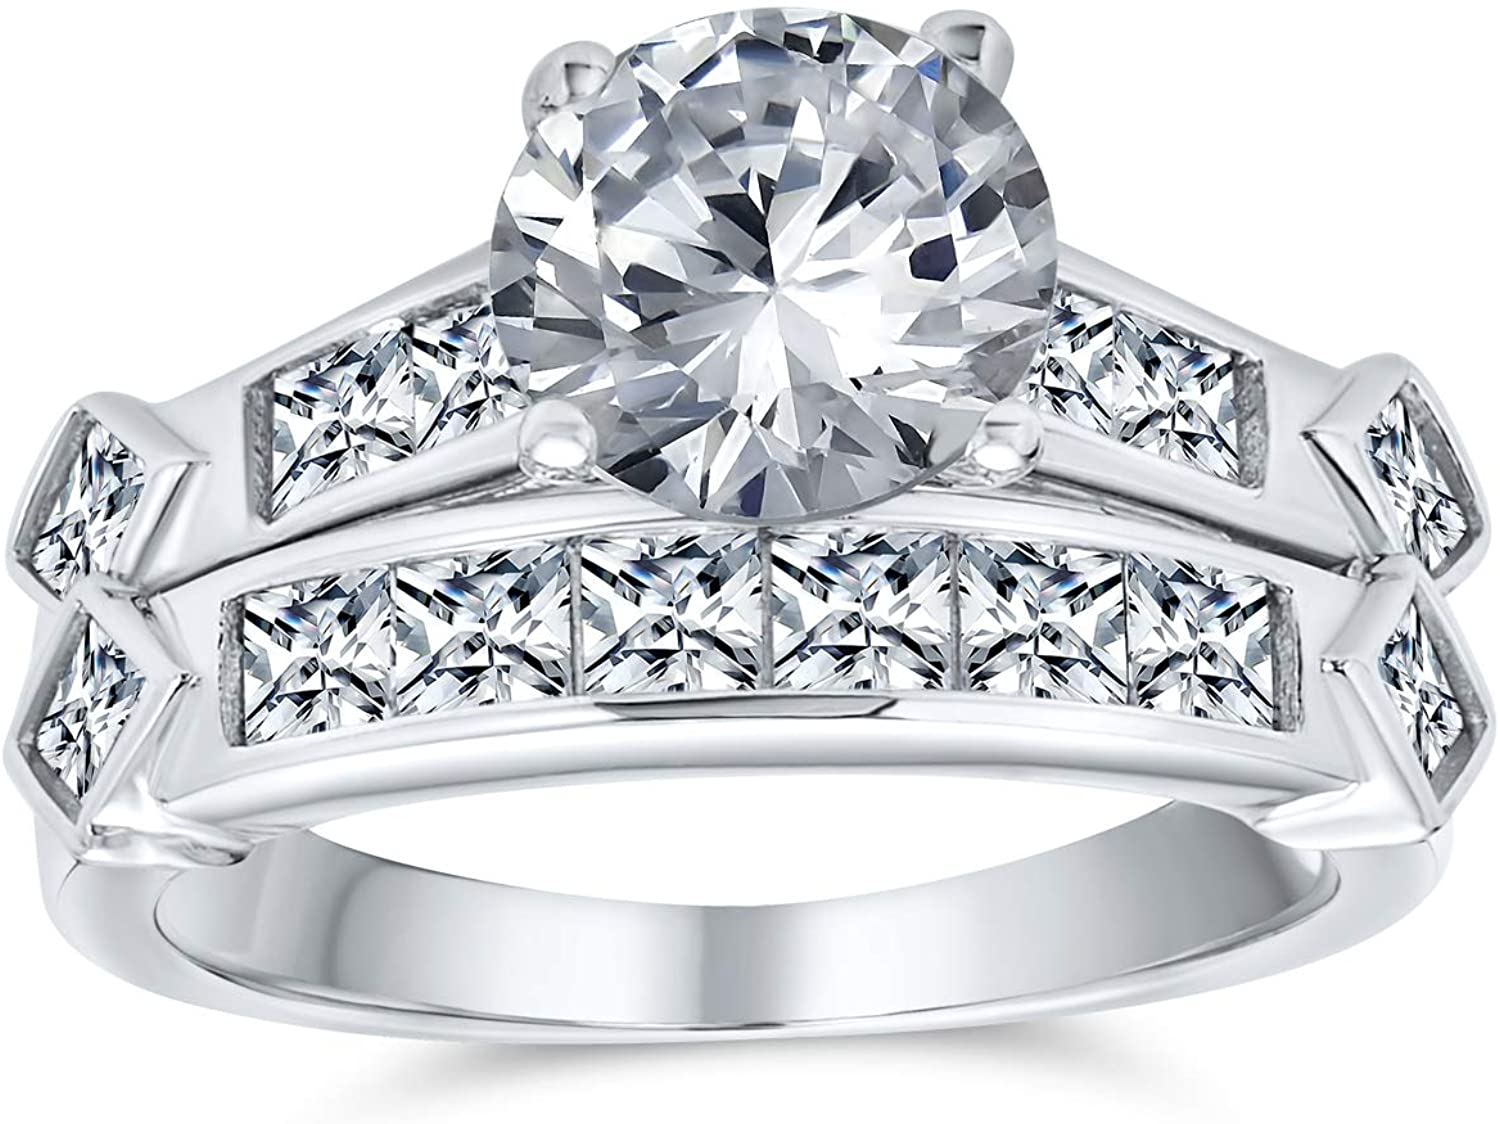 Art Deco Style 2CT Solitaire AAA CZ Round Anniversary Engagement Wedding Ring Band Set For Women 925 Sterling Silver